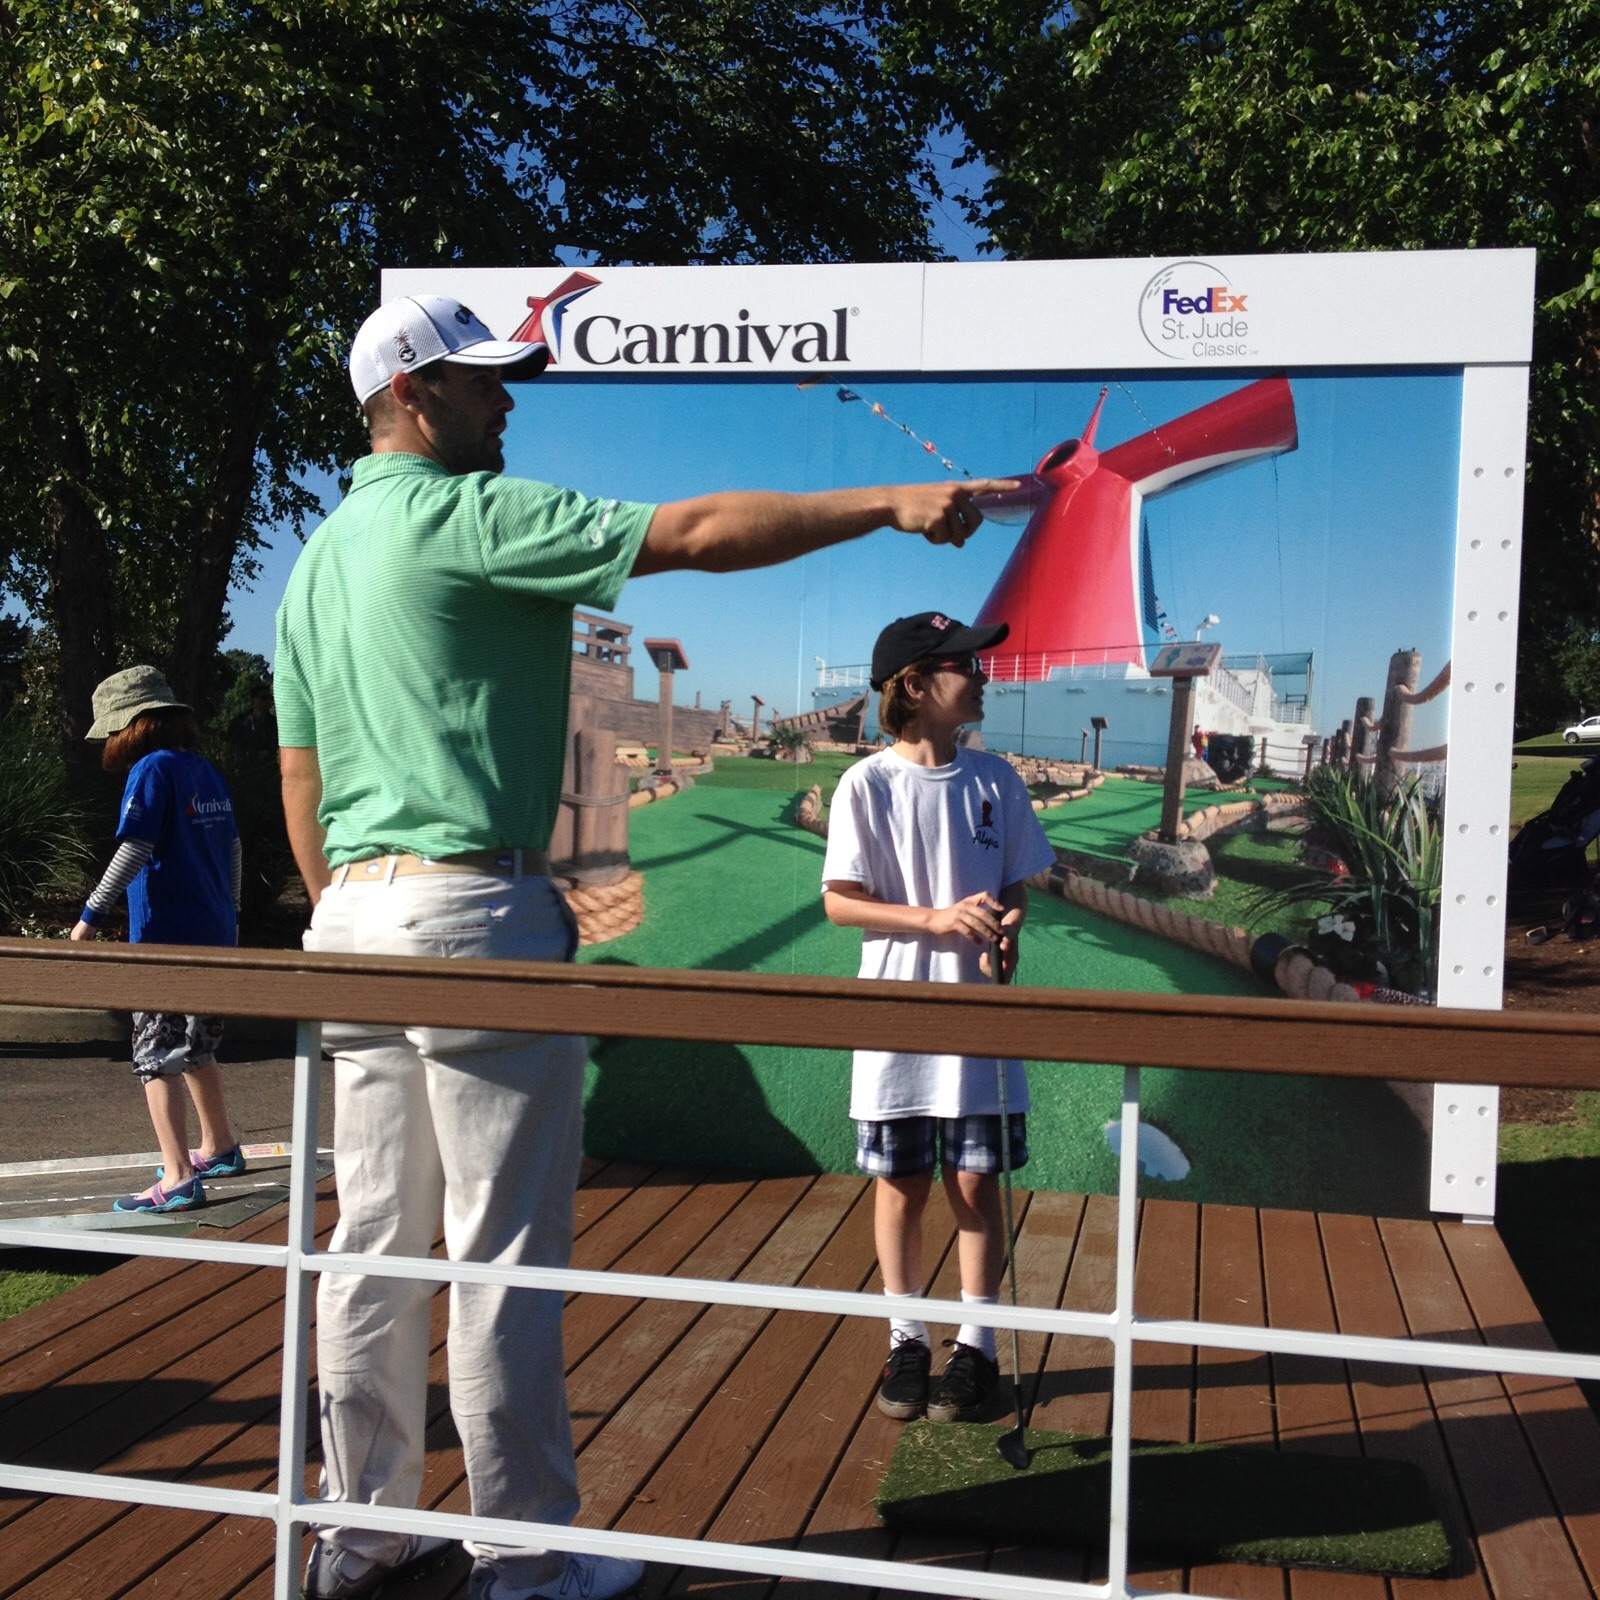 Carnival Cruise Line Brings Its Signature Brand of Fun to the FedEx St. Jude Classic Golf Tournament